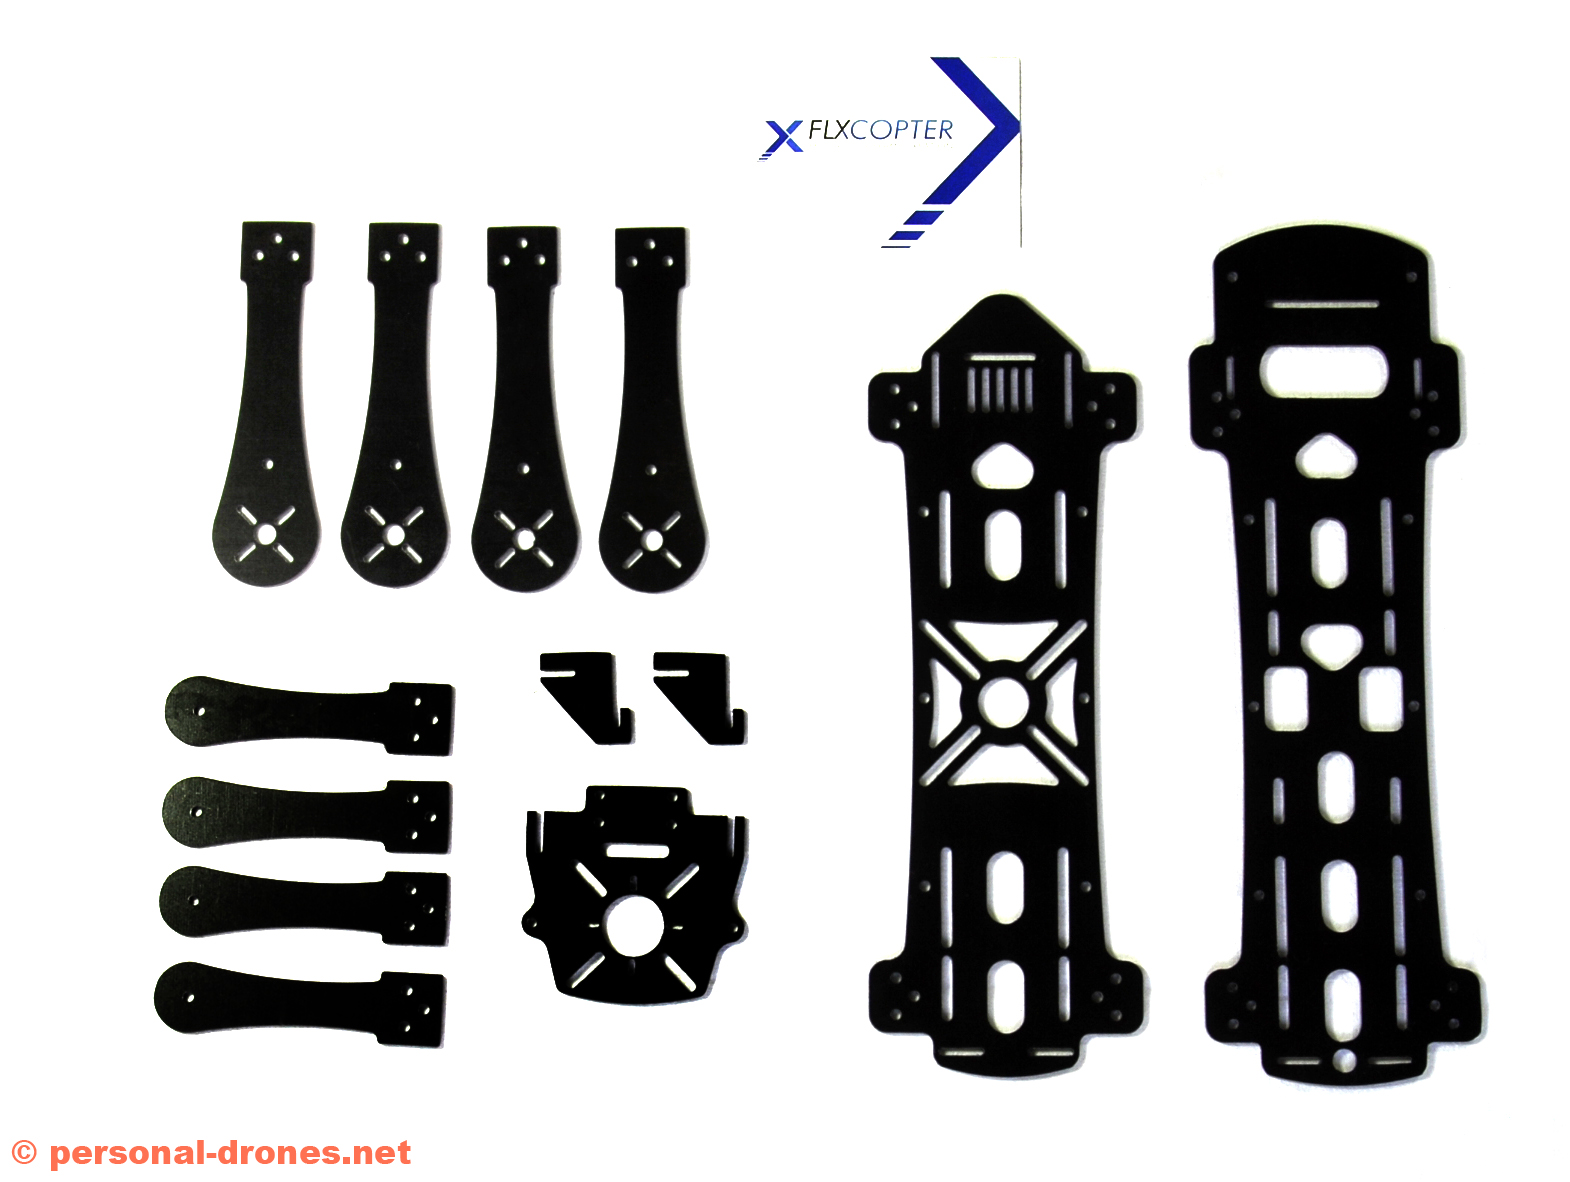 FlyXcopter frame parts